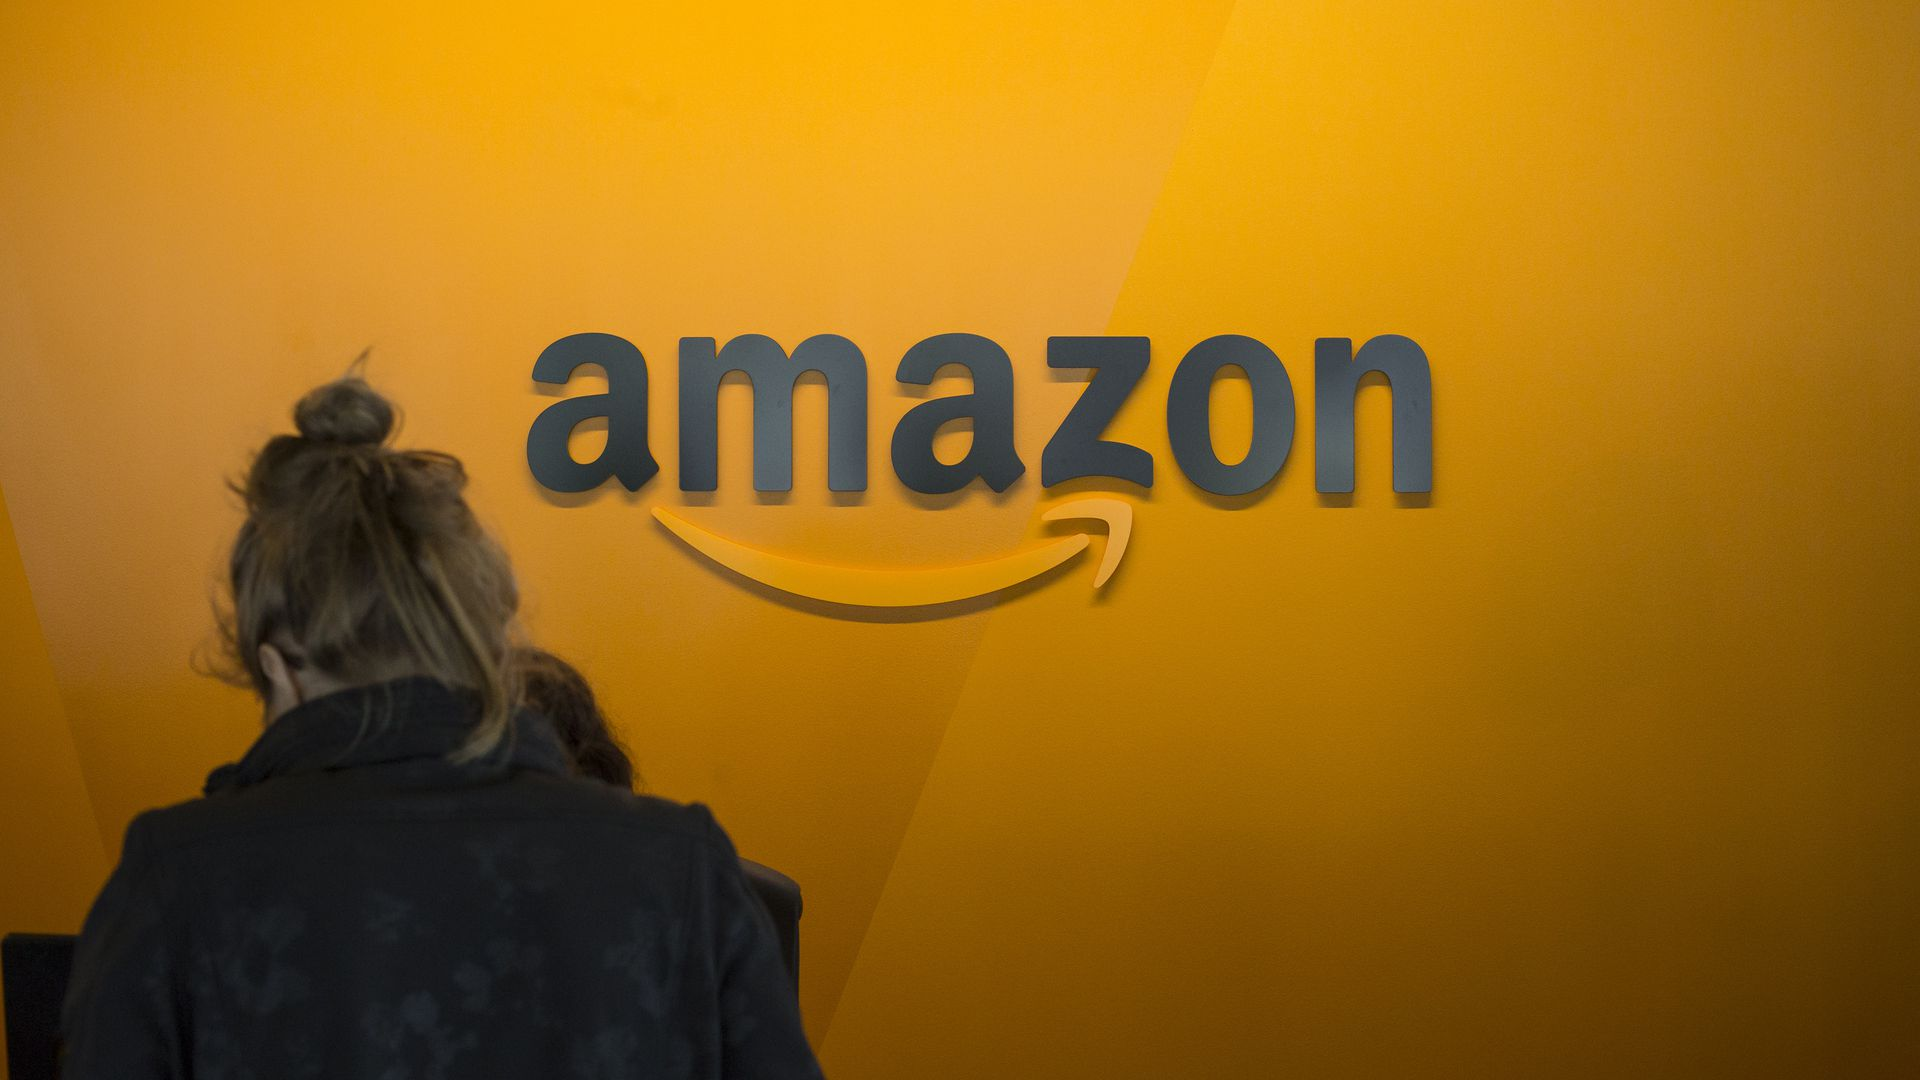 A woman walks in front of an orange wall with the Amazon.com logo on it